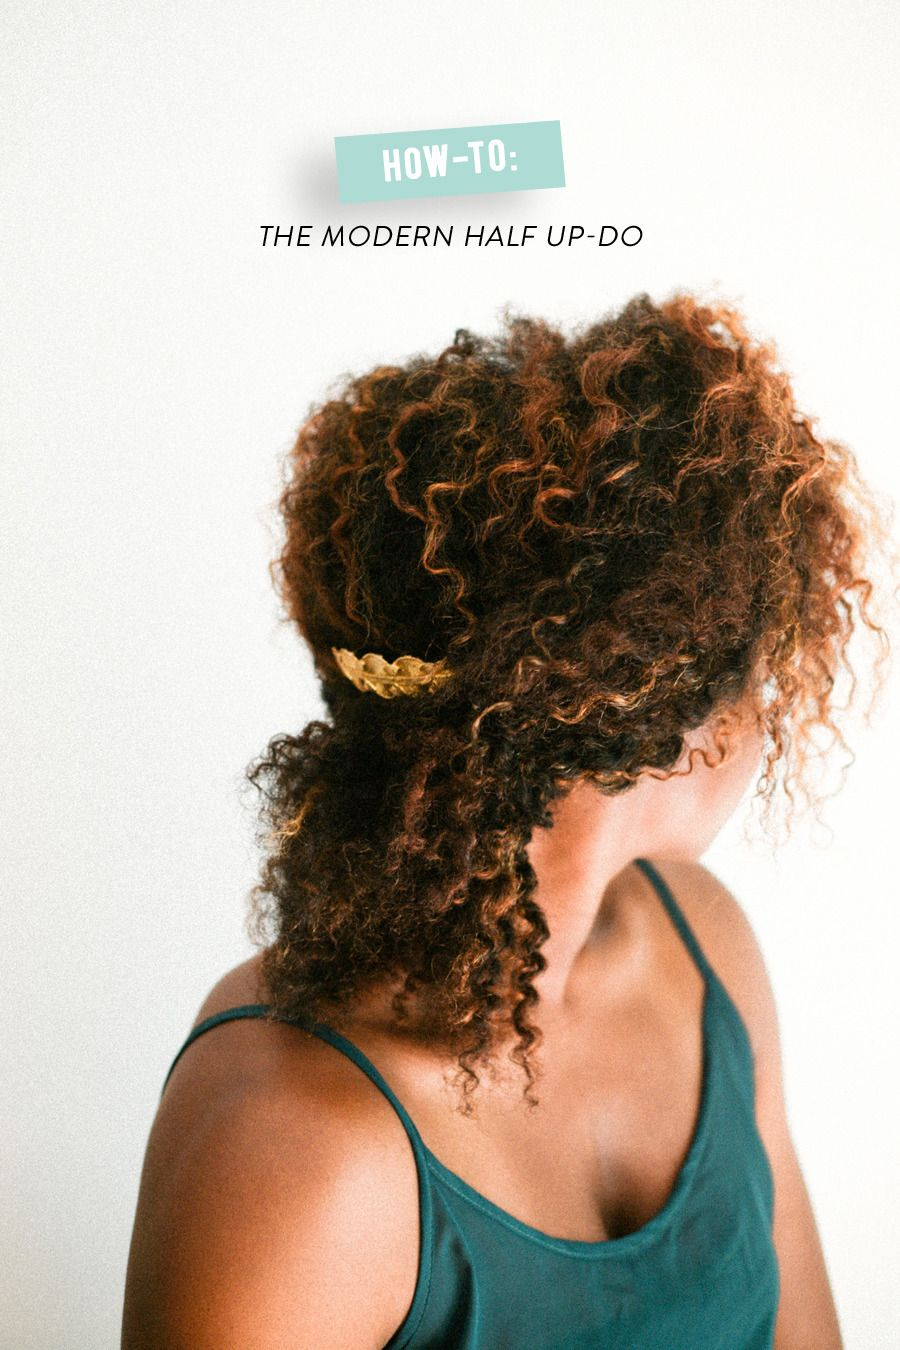 How-to: The Modern Half Up-Do